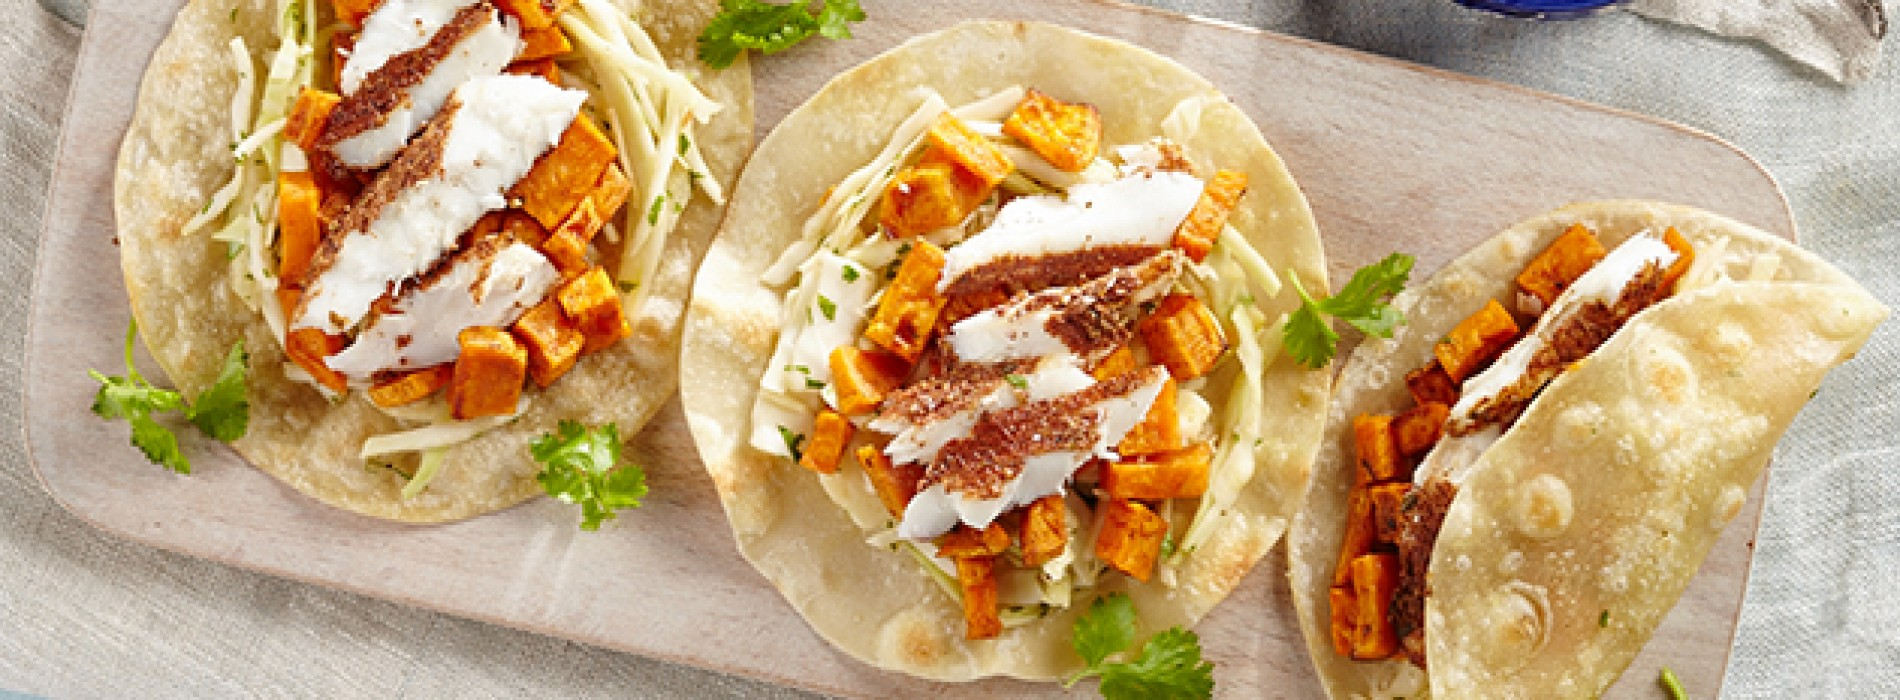 Fish Tacos with Citrus Slaw and Glazed Sweet Potato